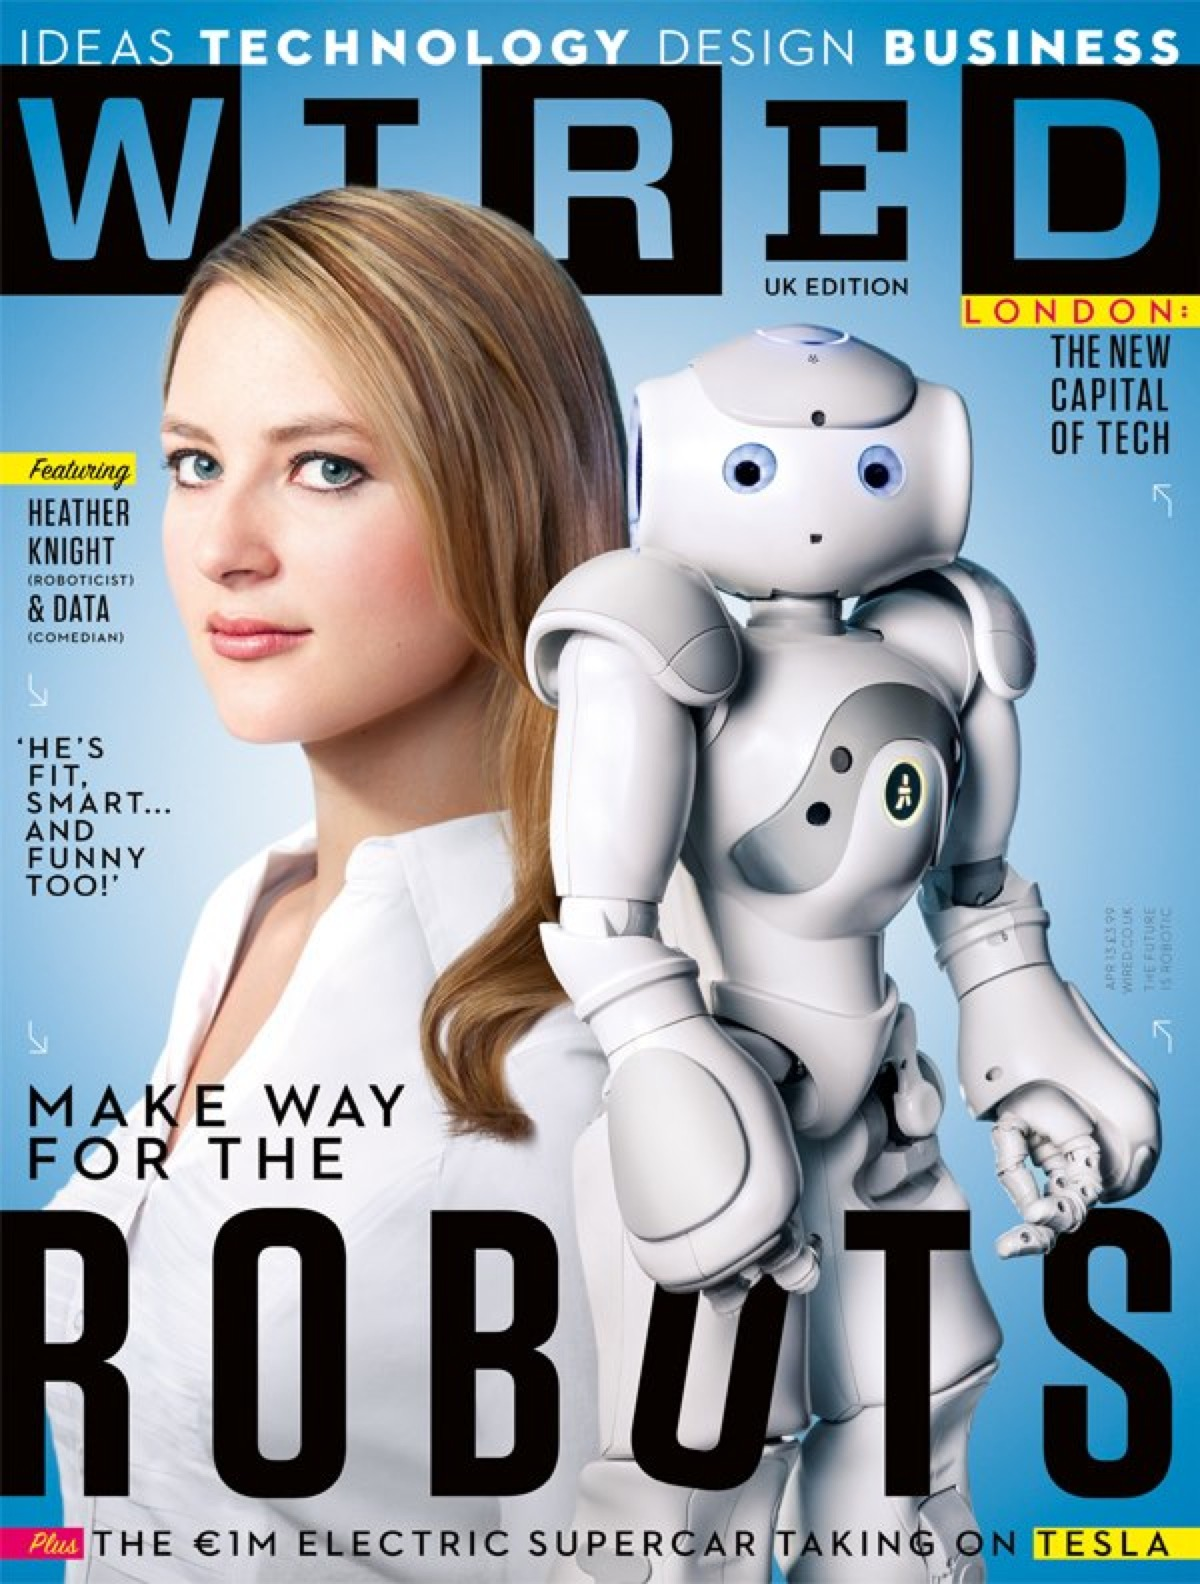 Heather Knight on the cover of WIRED! @HeatherKnight ...